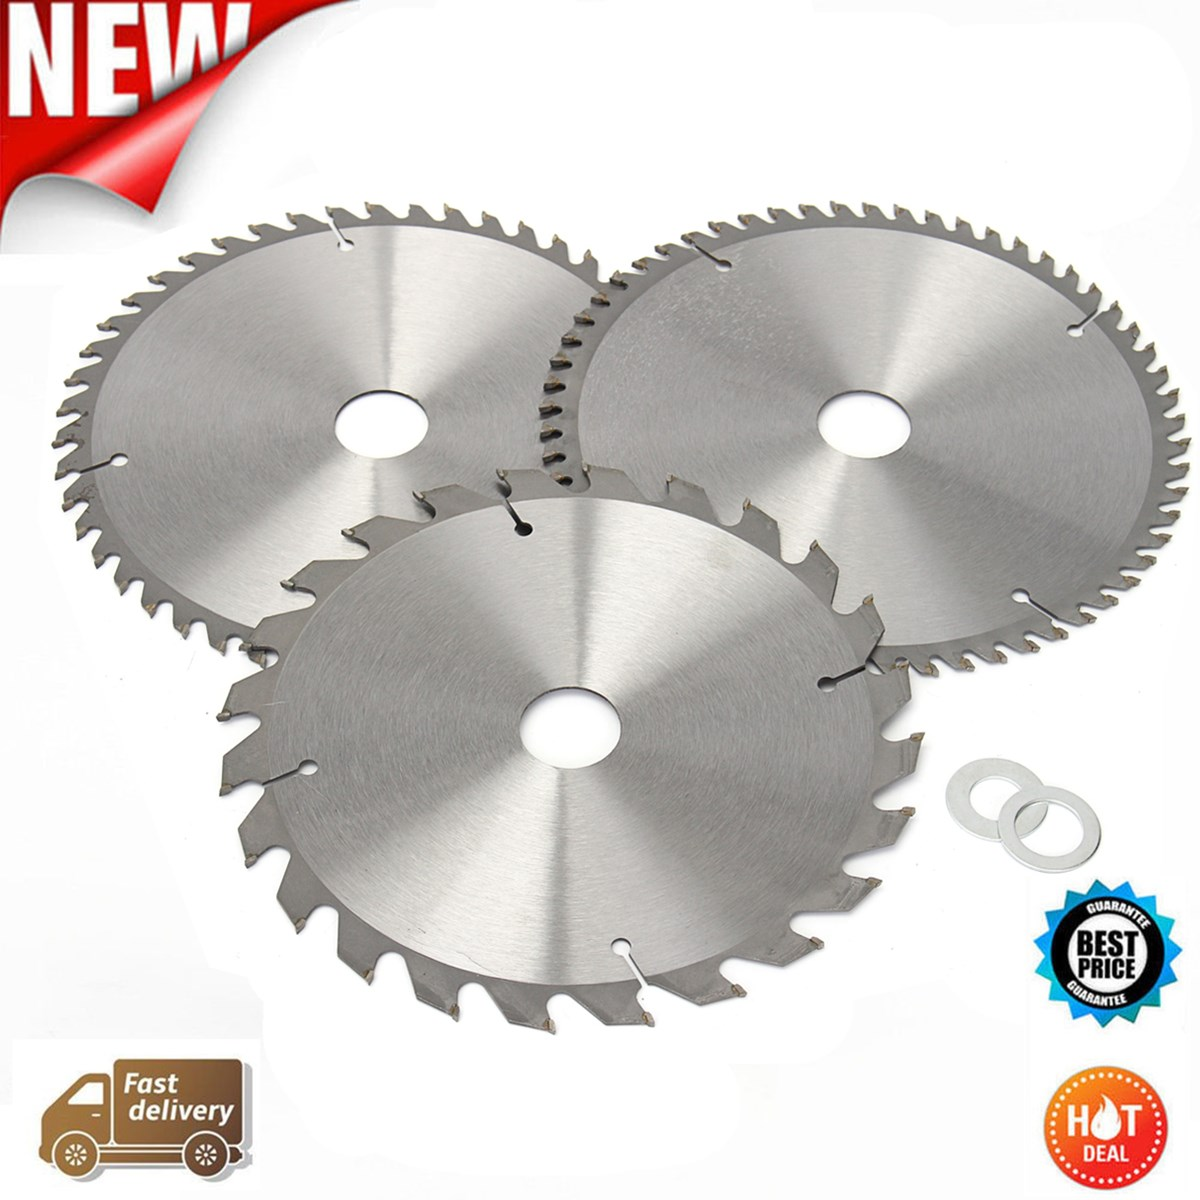 цена на New Hot Sale 3 Pcs/set 210mm TCT 24/48/60T Circular Saw Blade For Home Decoration Purpose Wood/Thin For General Cutting Machine